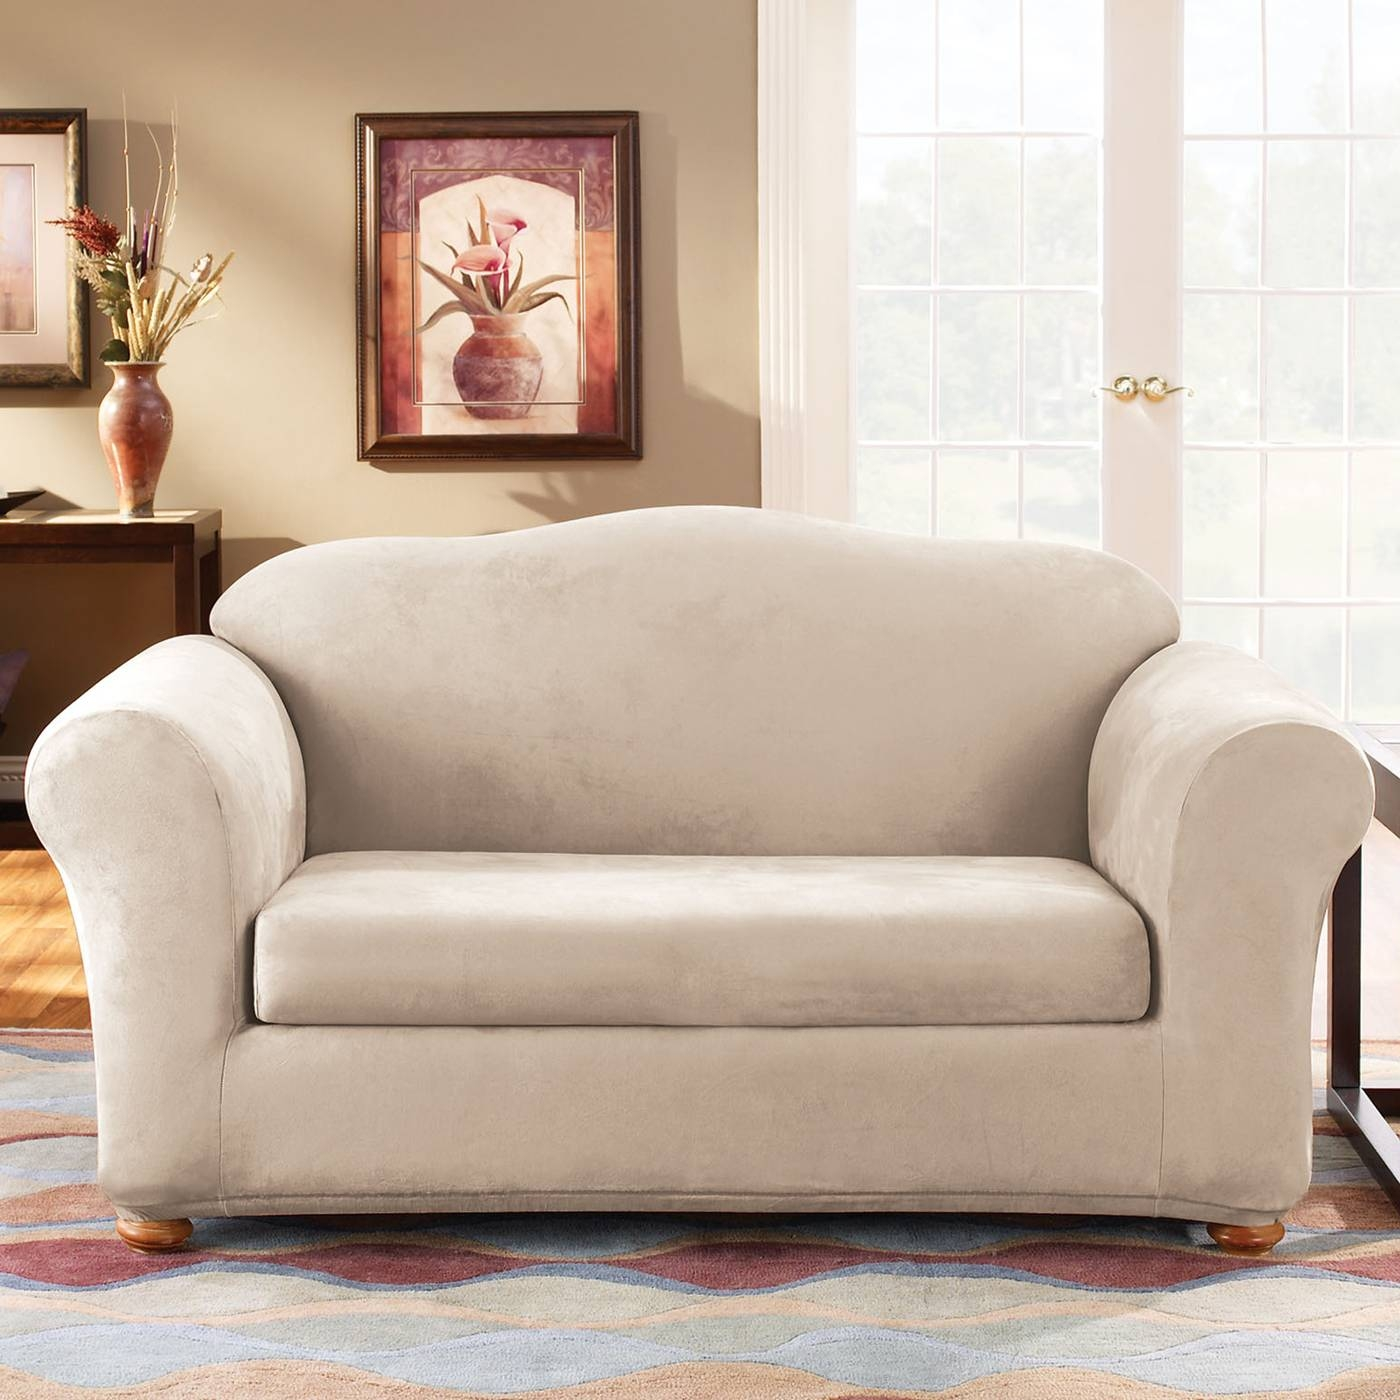 Sure Fit Slipcovers Form Fit Stretch Suede 2-Piece Sofa Slipcover for Suede Slipcovers For Sofas (Image 10 of 15)